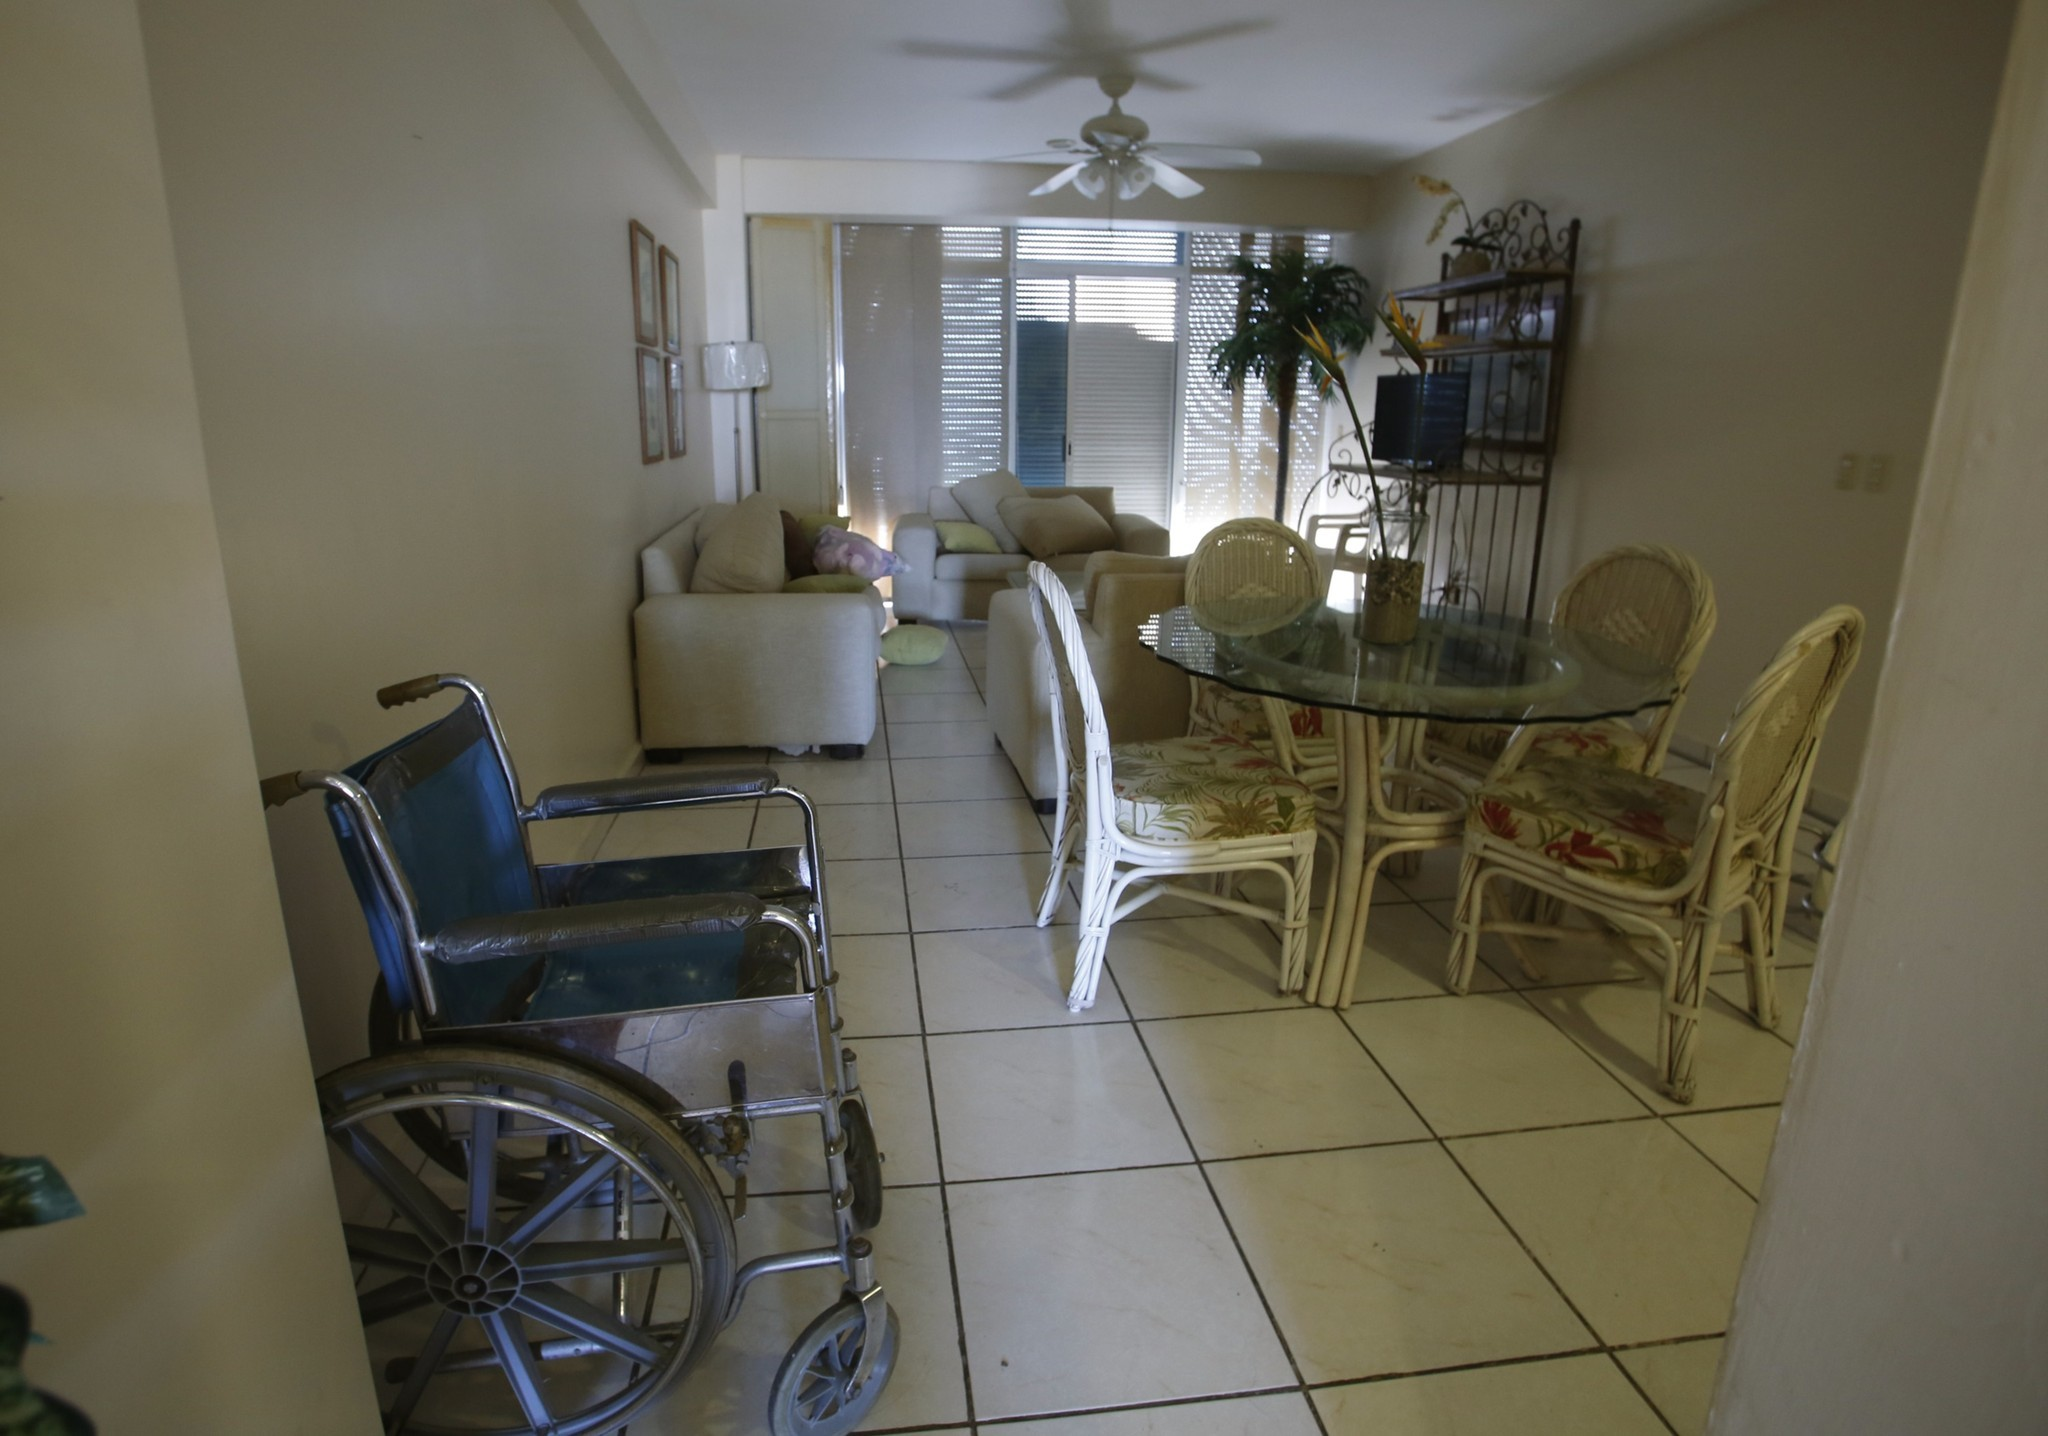 "Inside the condo where Joaquin ""El Chapo\"" Guzman was captured - The living room"